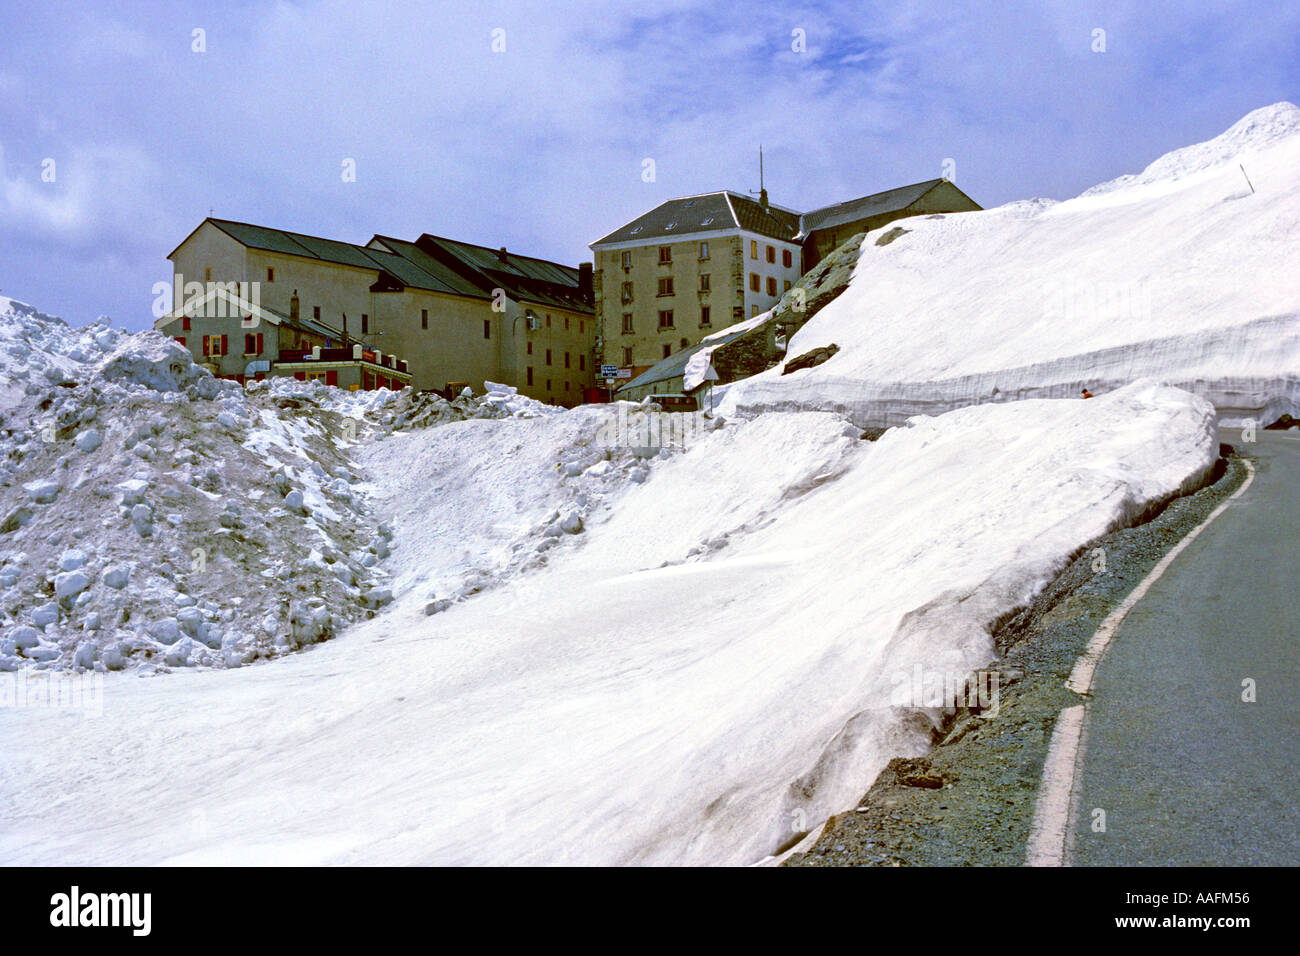 Hospice du Grand St Bernard at 2473m summit oldest pass between Martigny Valais Switzerland and Valle d Aosta Italy Stock Photo